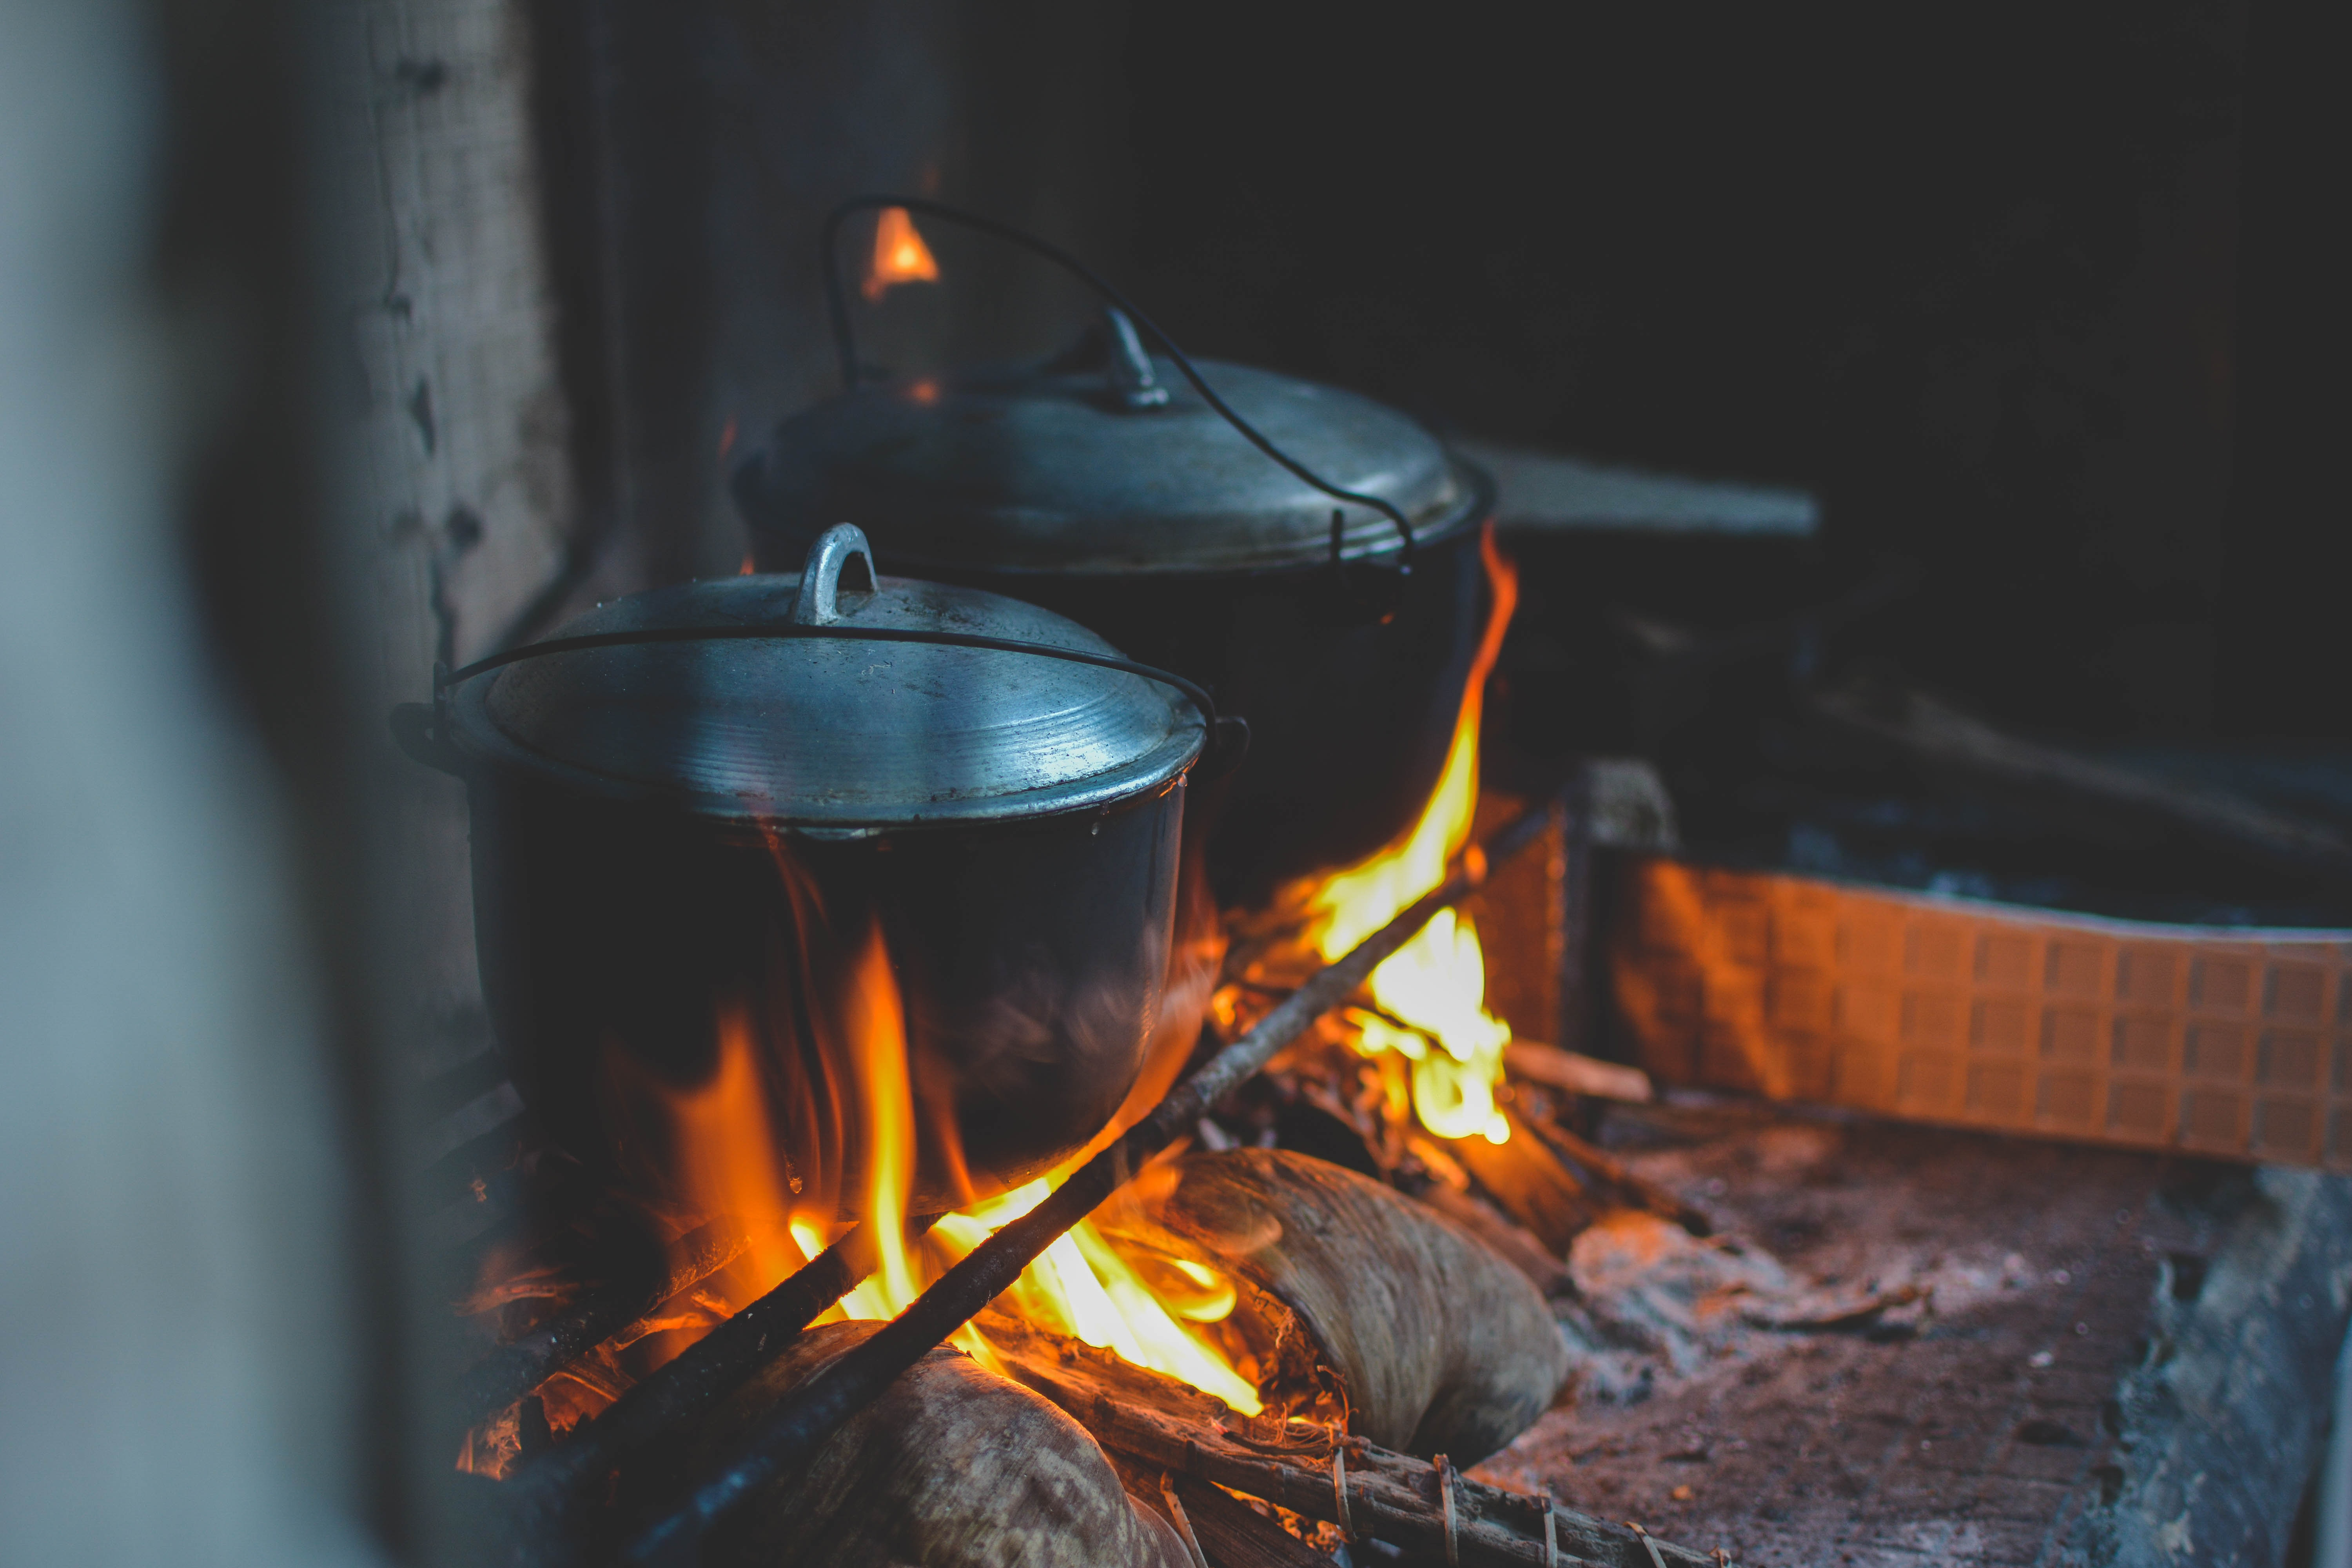 Wood fires are common in many low- and middle-income kitchens.